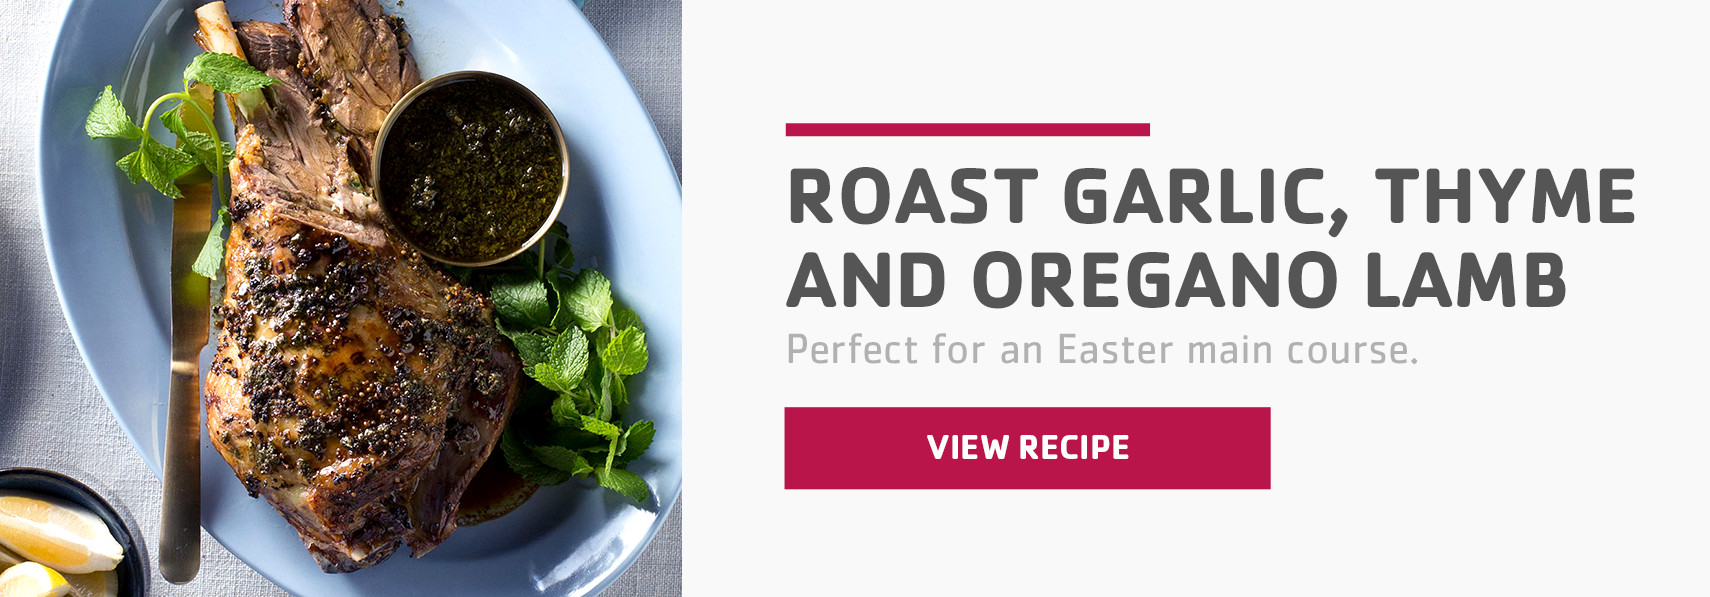 Roast garlic thyme and oregano lamb listing page banner.jpg